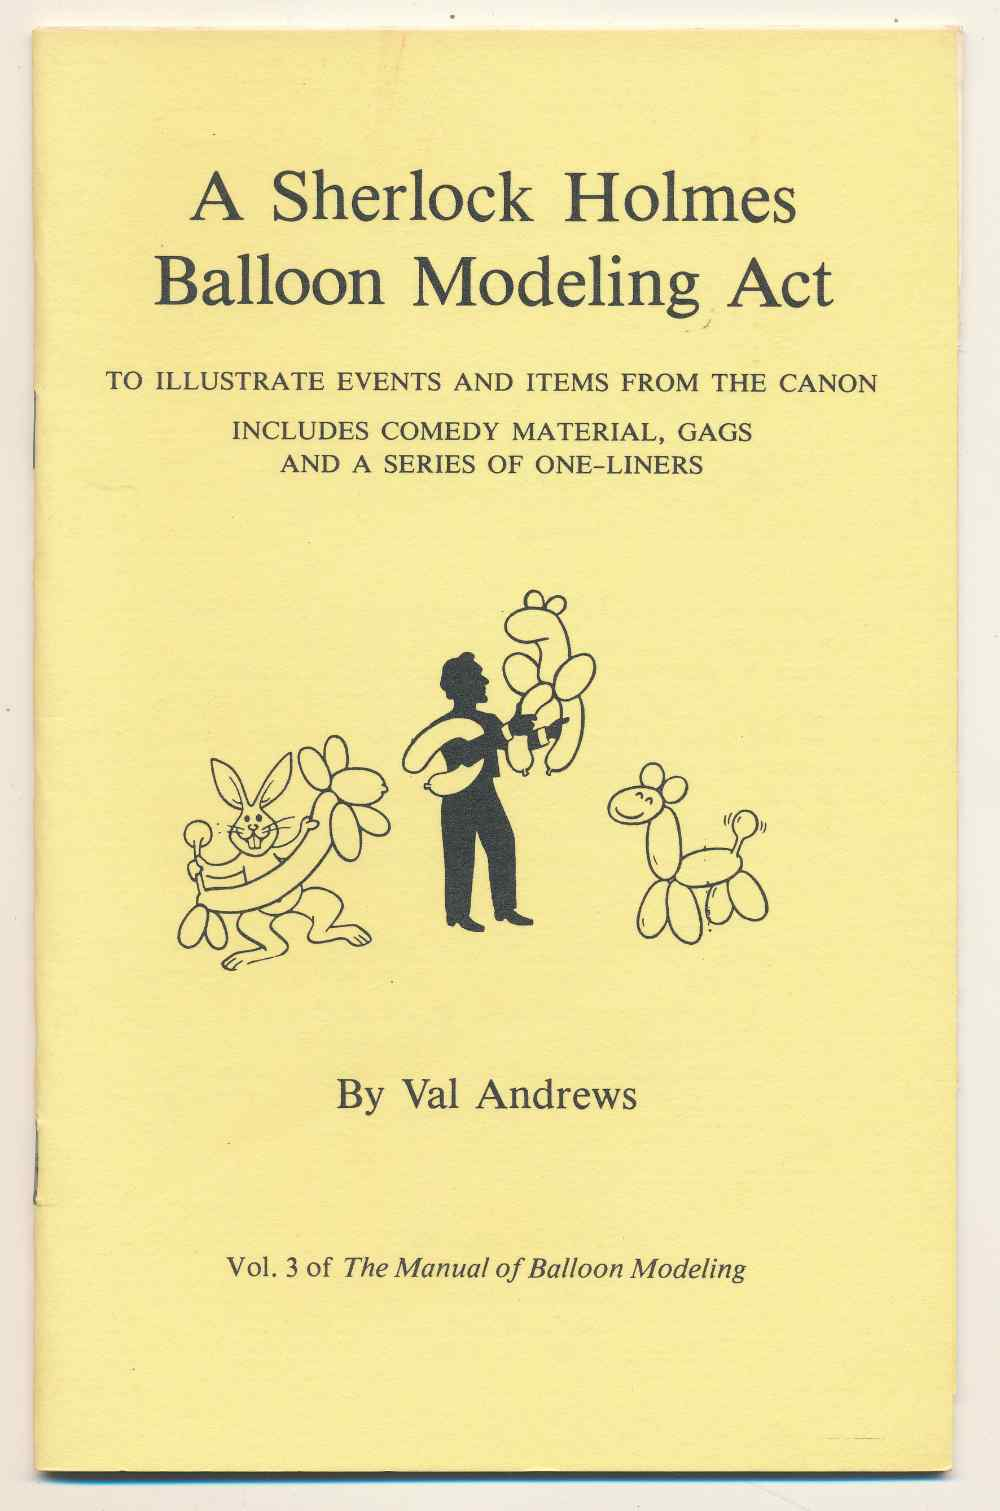 A Sherlock Holmes balloon modeling act to illustrate events and items from the canon